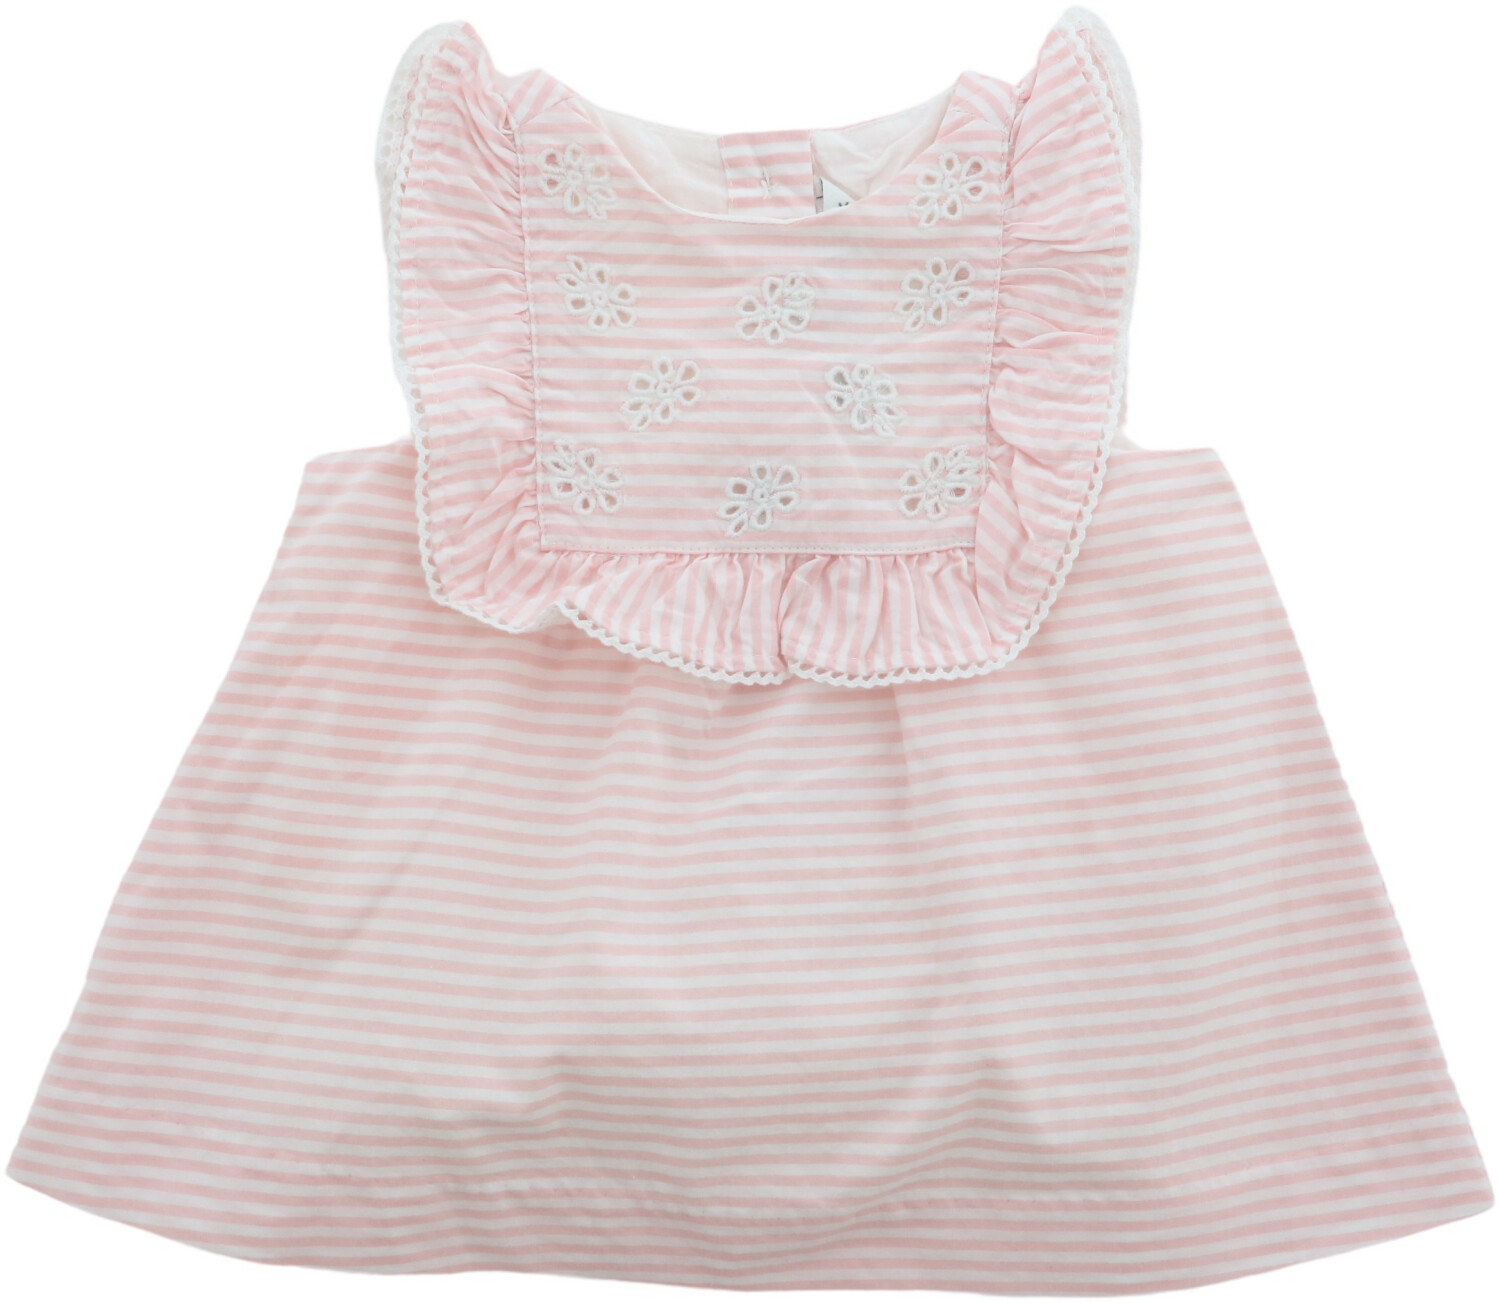 Janie And Jack Girl's Petal Pink Stripe Striped Eyelet One Piece Romper - 0-3 Months